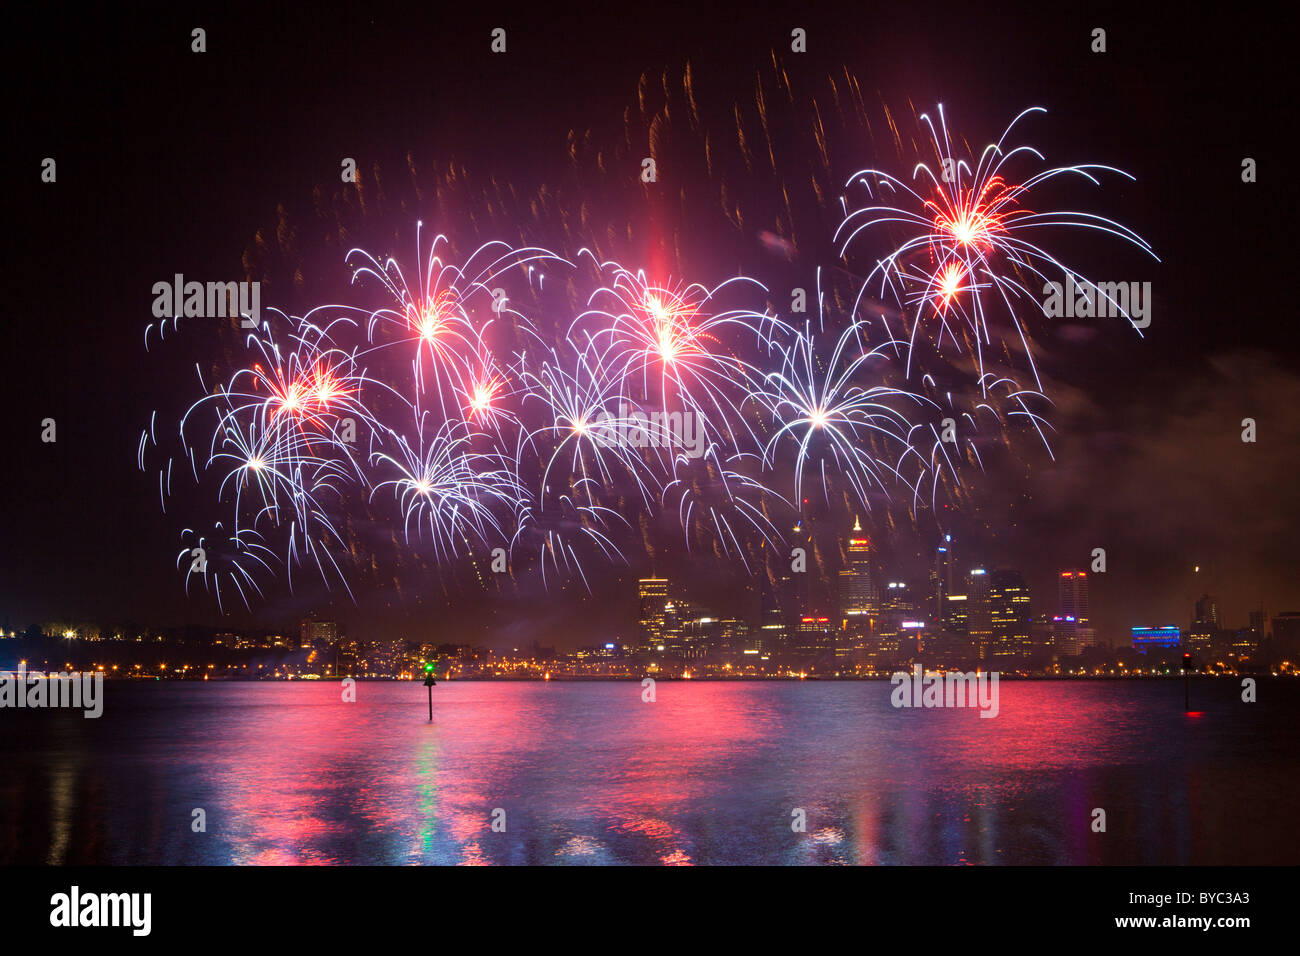 Skyworks Australia Day fireworks over the Swan River - Stock Image